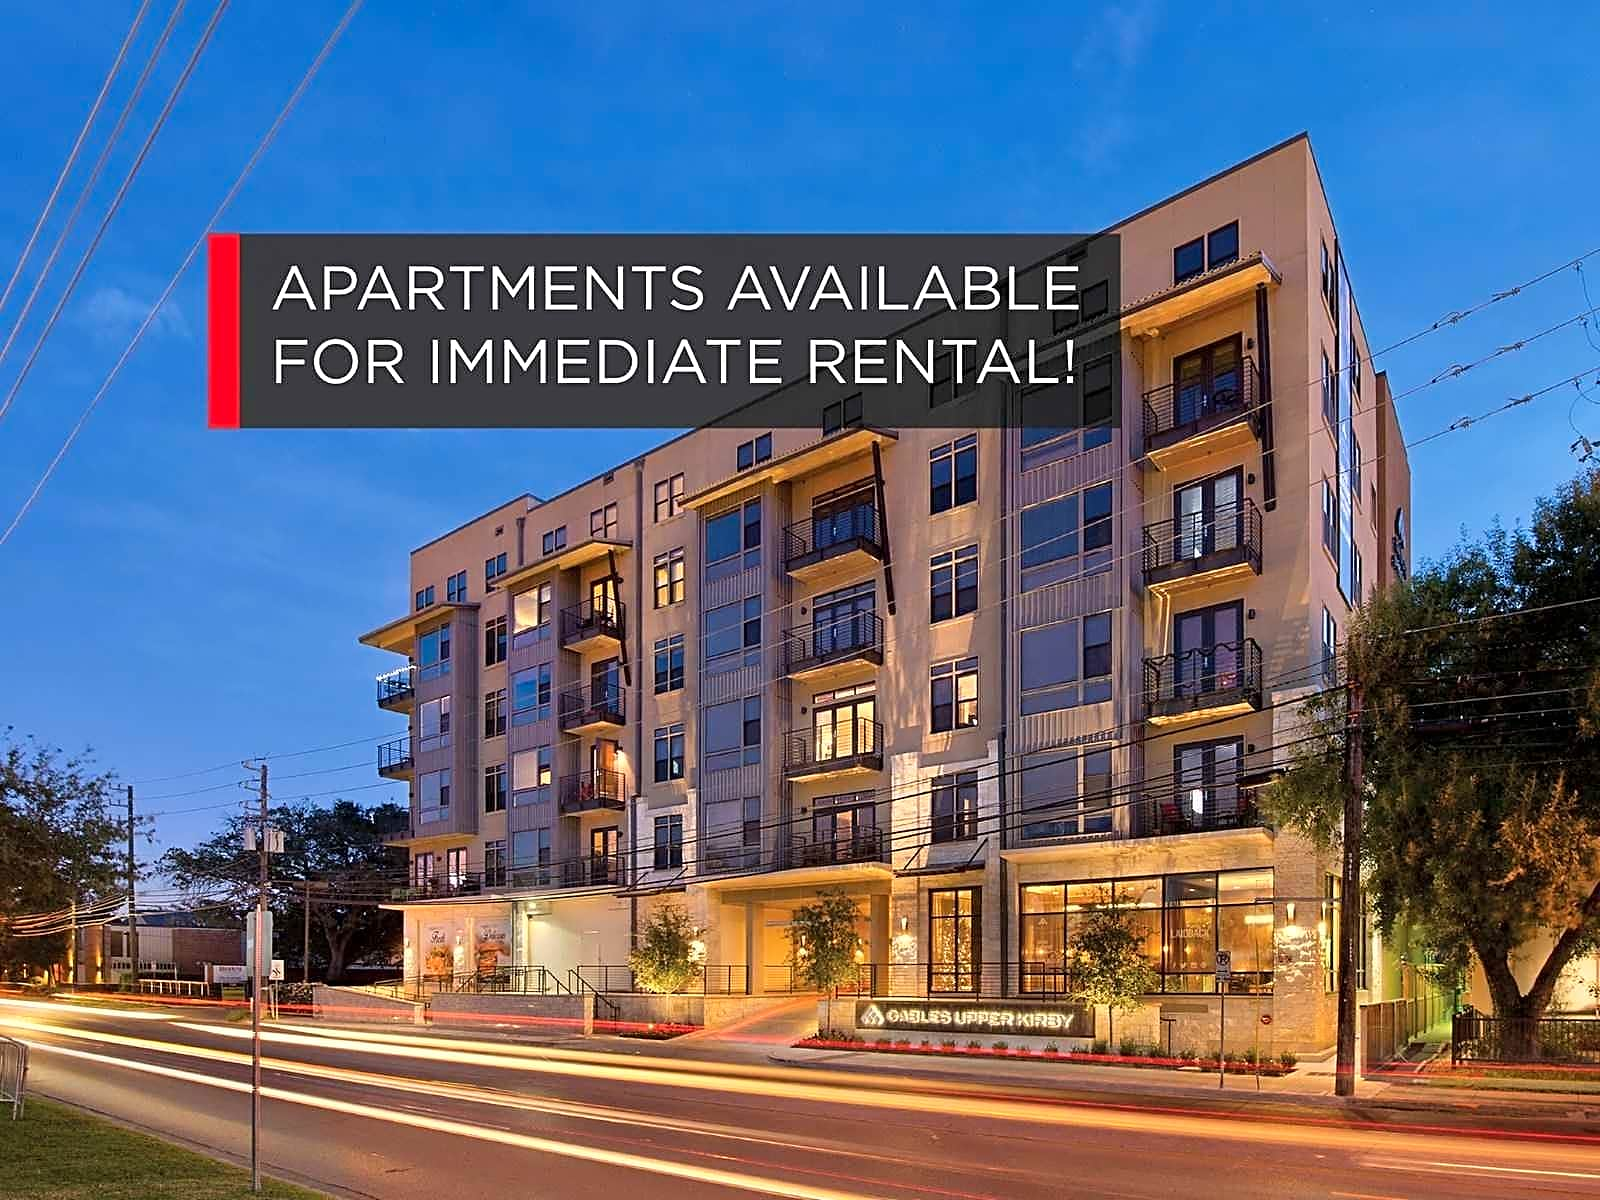 Apartments Near Baylor University Medical Center